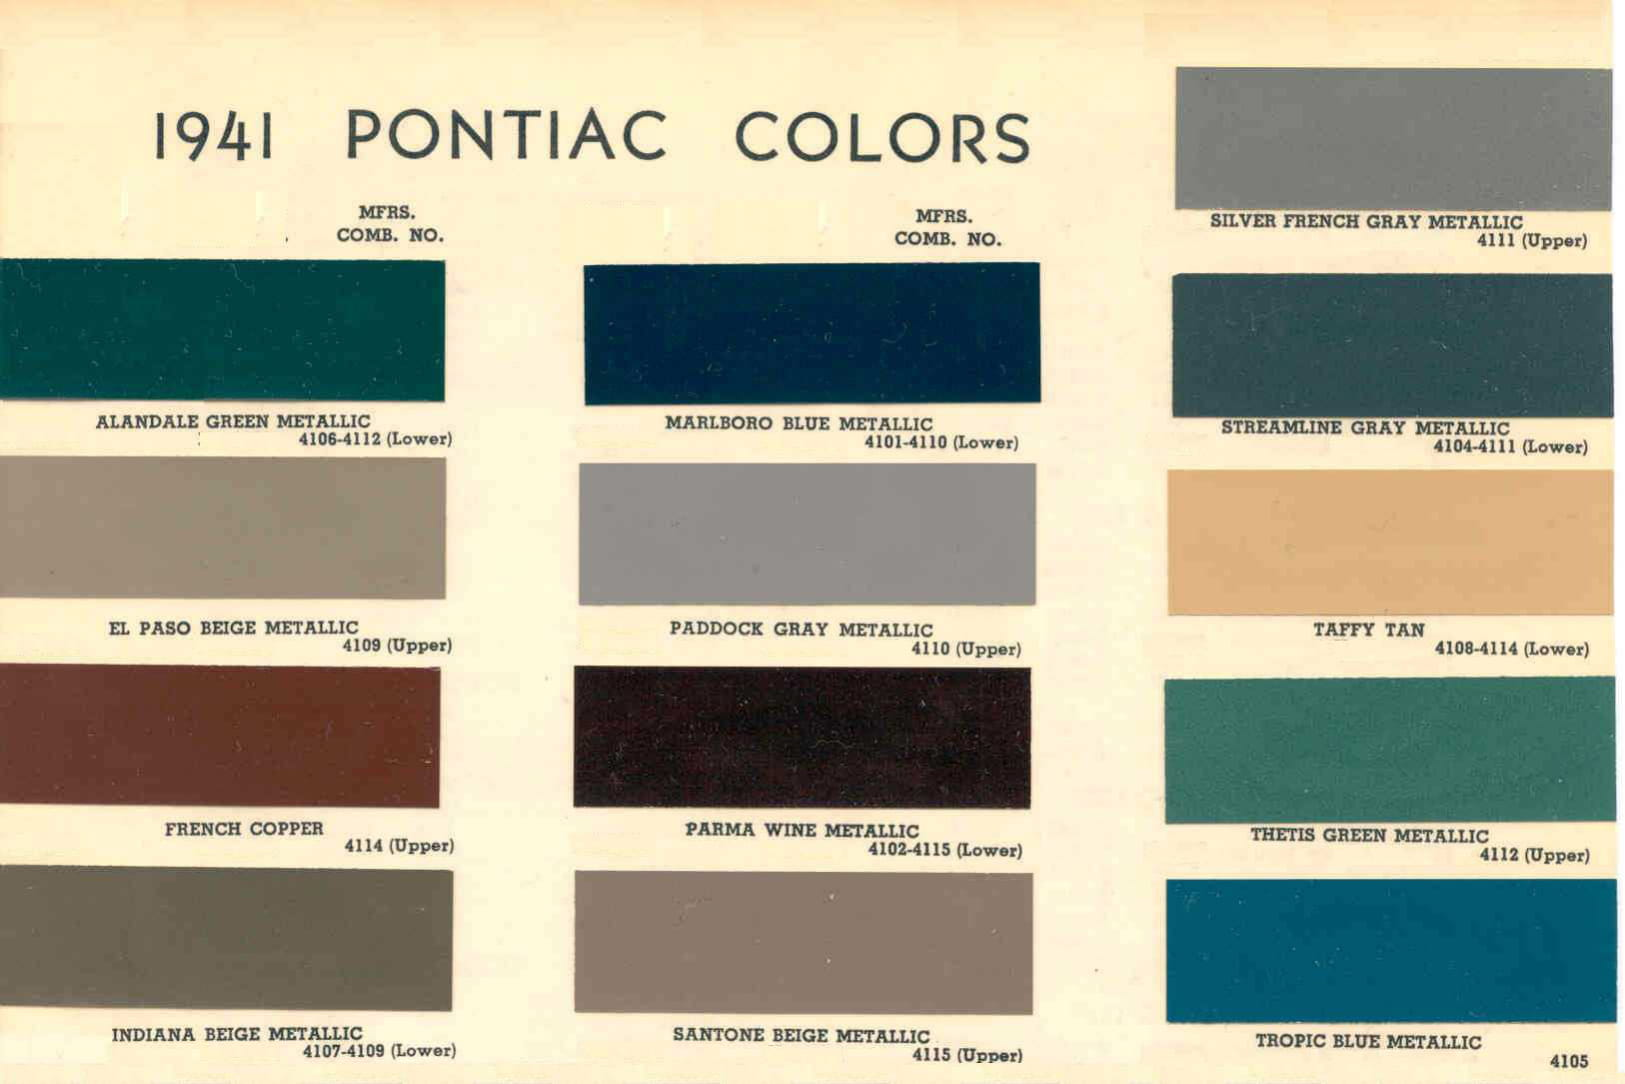 Color Code and Paint Color Chart for Pontiac for 1941